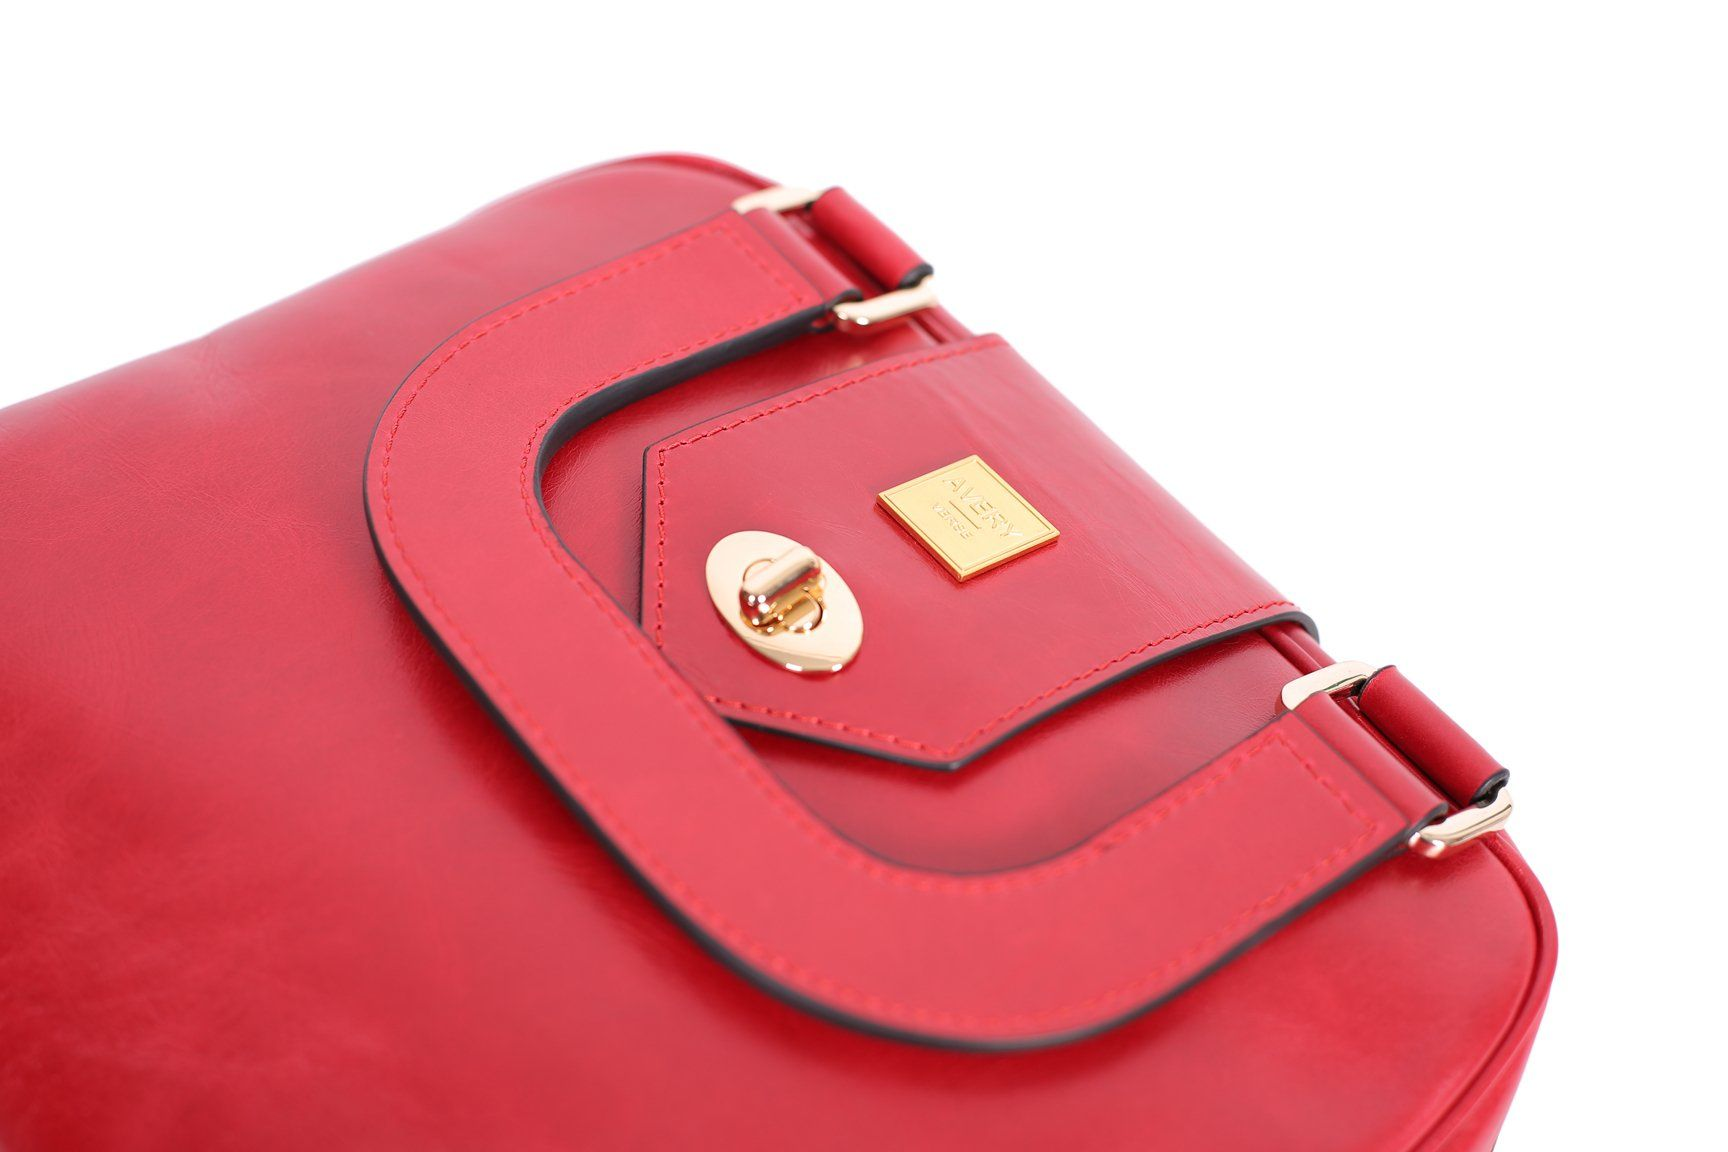 2a6dae6b0159 A luxury leather bag and a social conscience rarely go together. If there  ever is mention of this it s almost always centered around a limited  edition ...